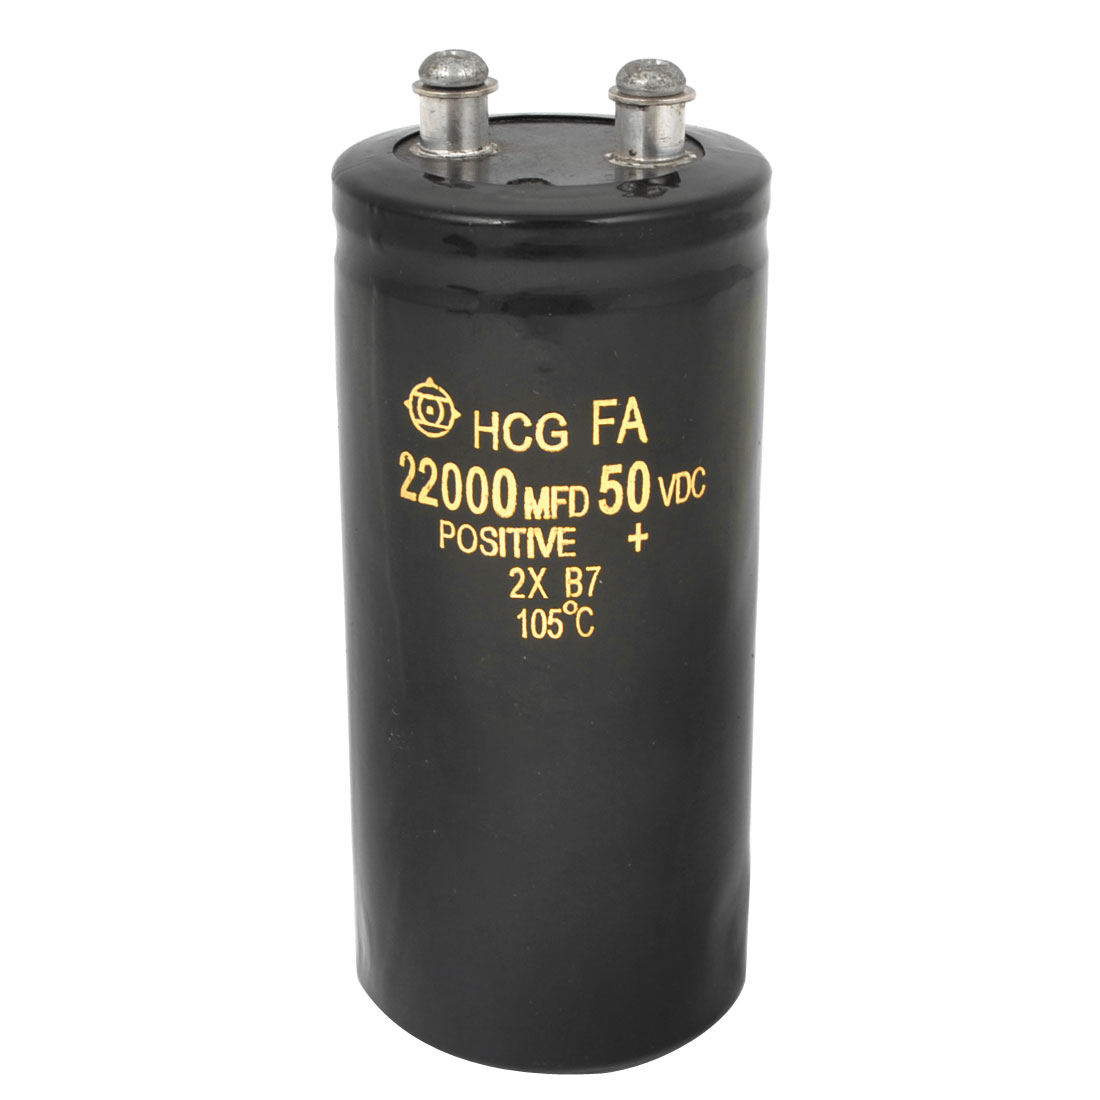 Screw Terminal Metal Can Aluminium Electrolytic Capacitor 22000uF 50V 105C Temp